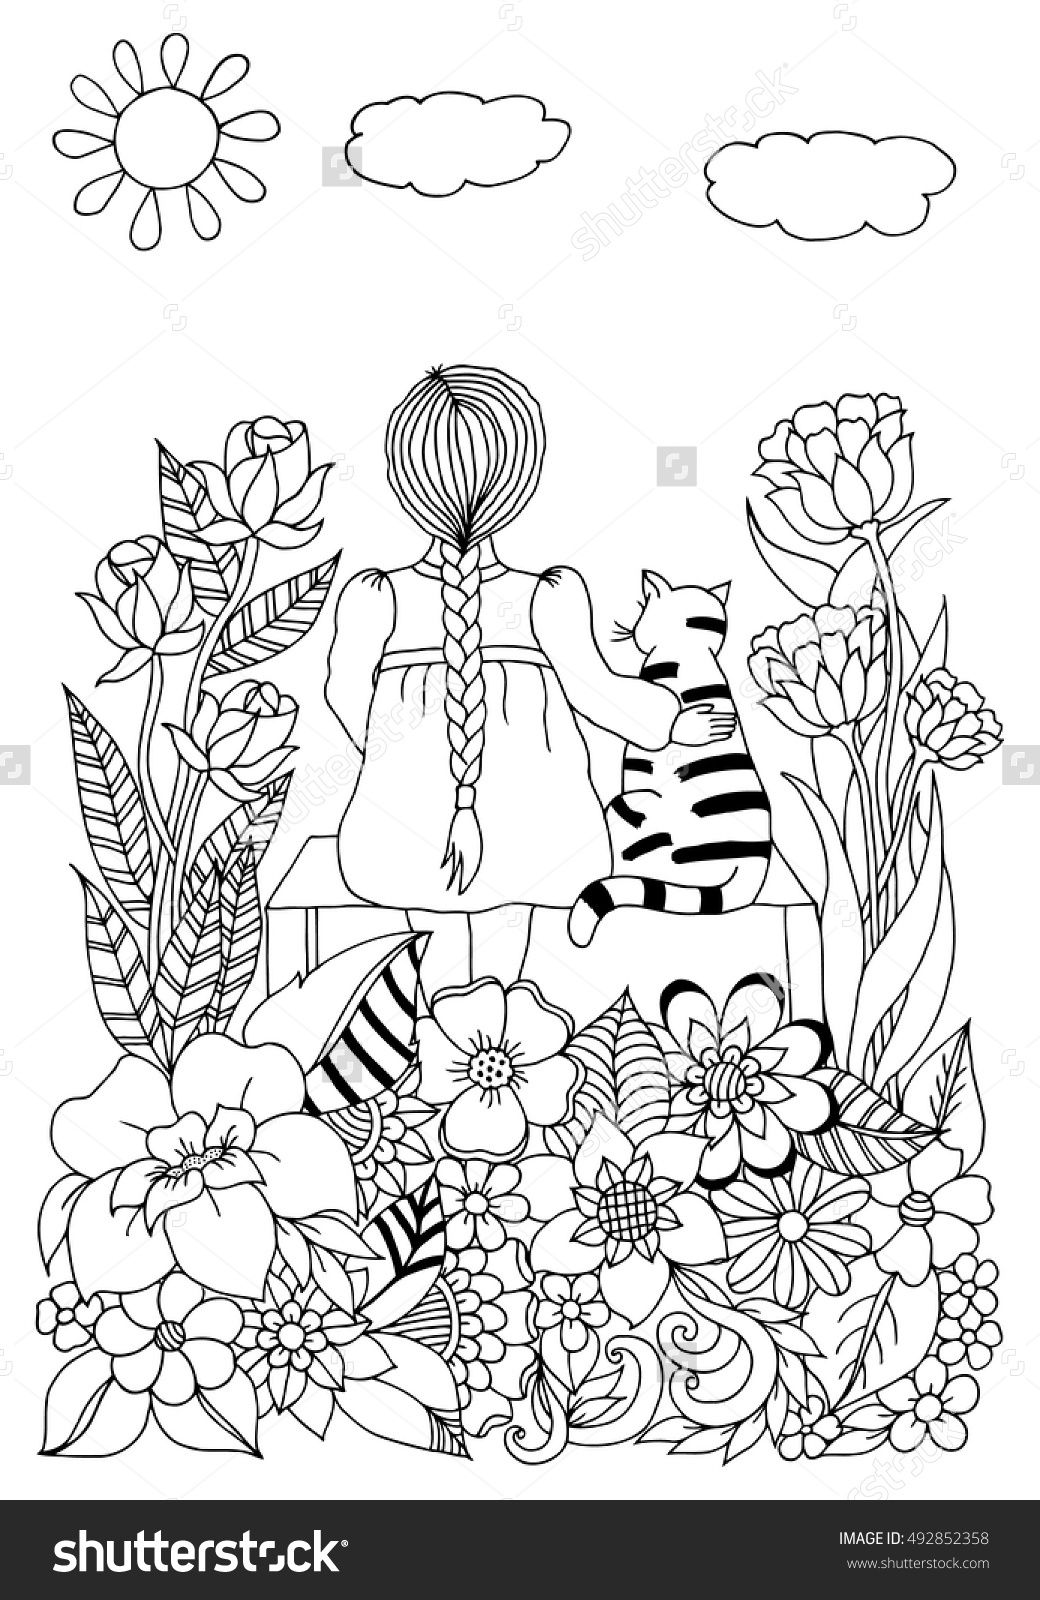 zentangle girl with cats in colors sitting on a bench